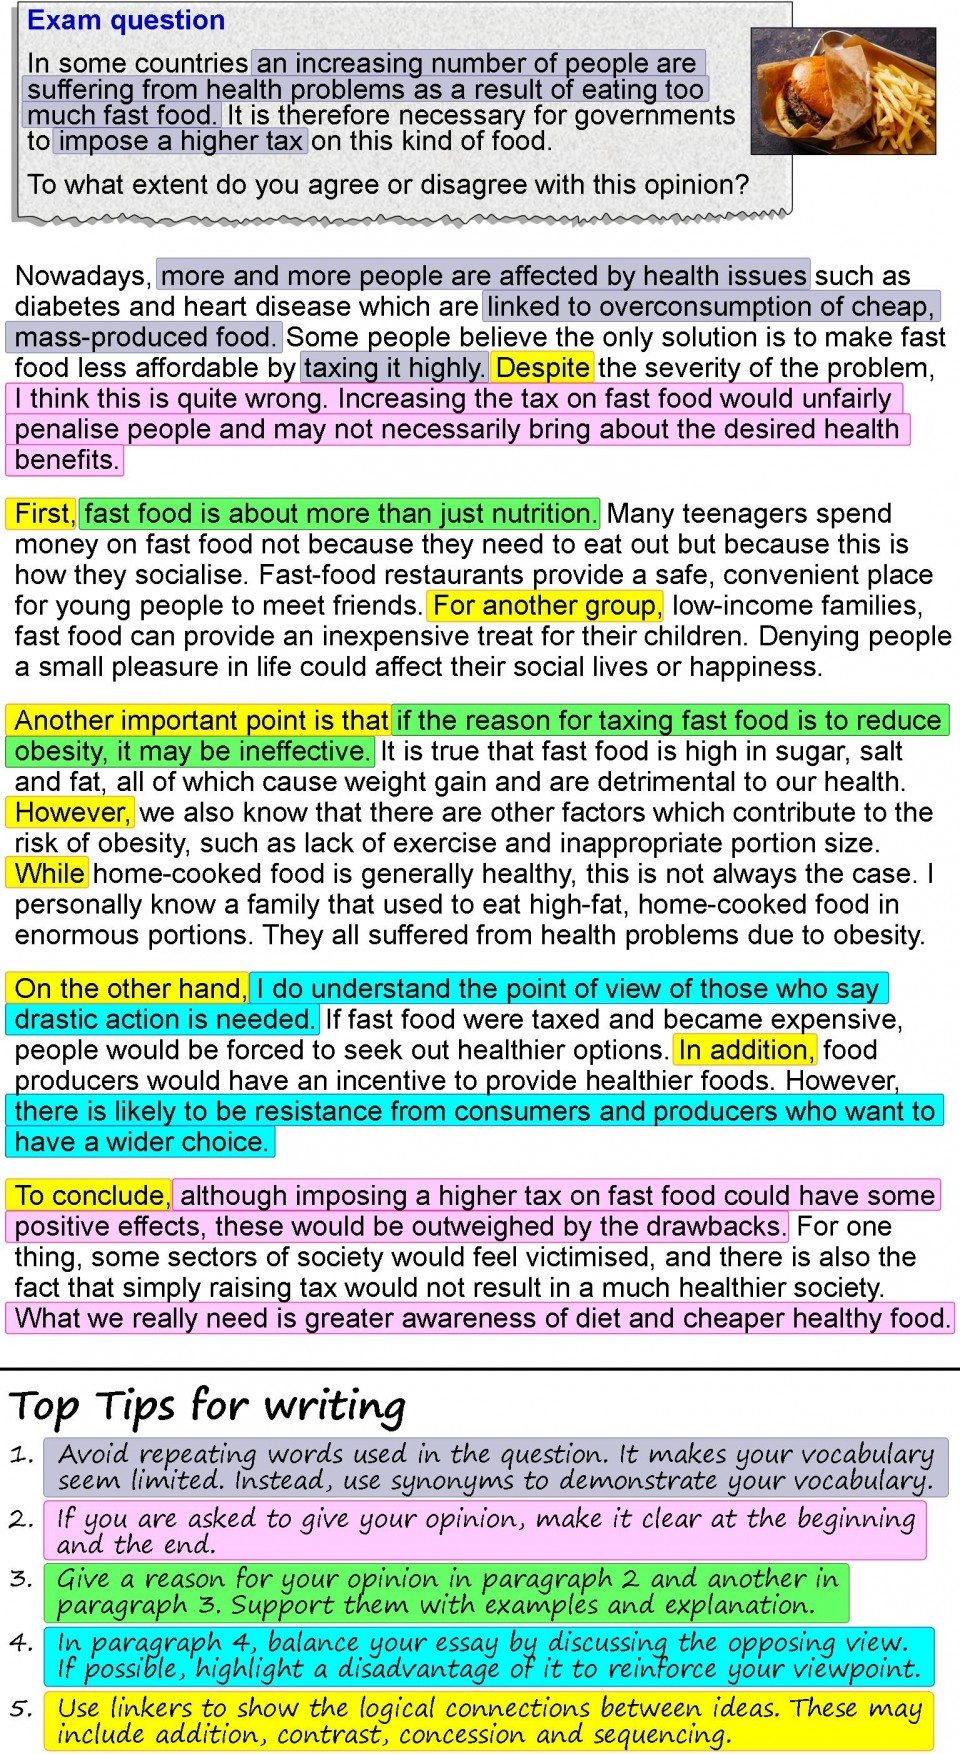 001 Opinion Essay About Fast Food Example An 4 Unbelievable Short British Council Restaurants 960